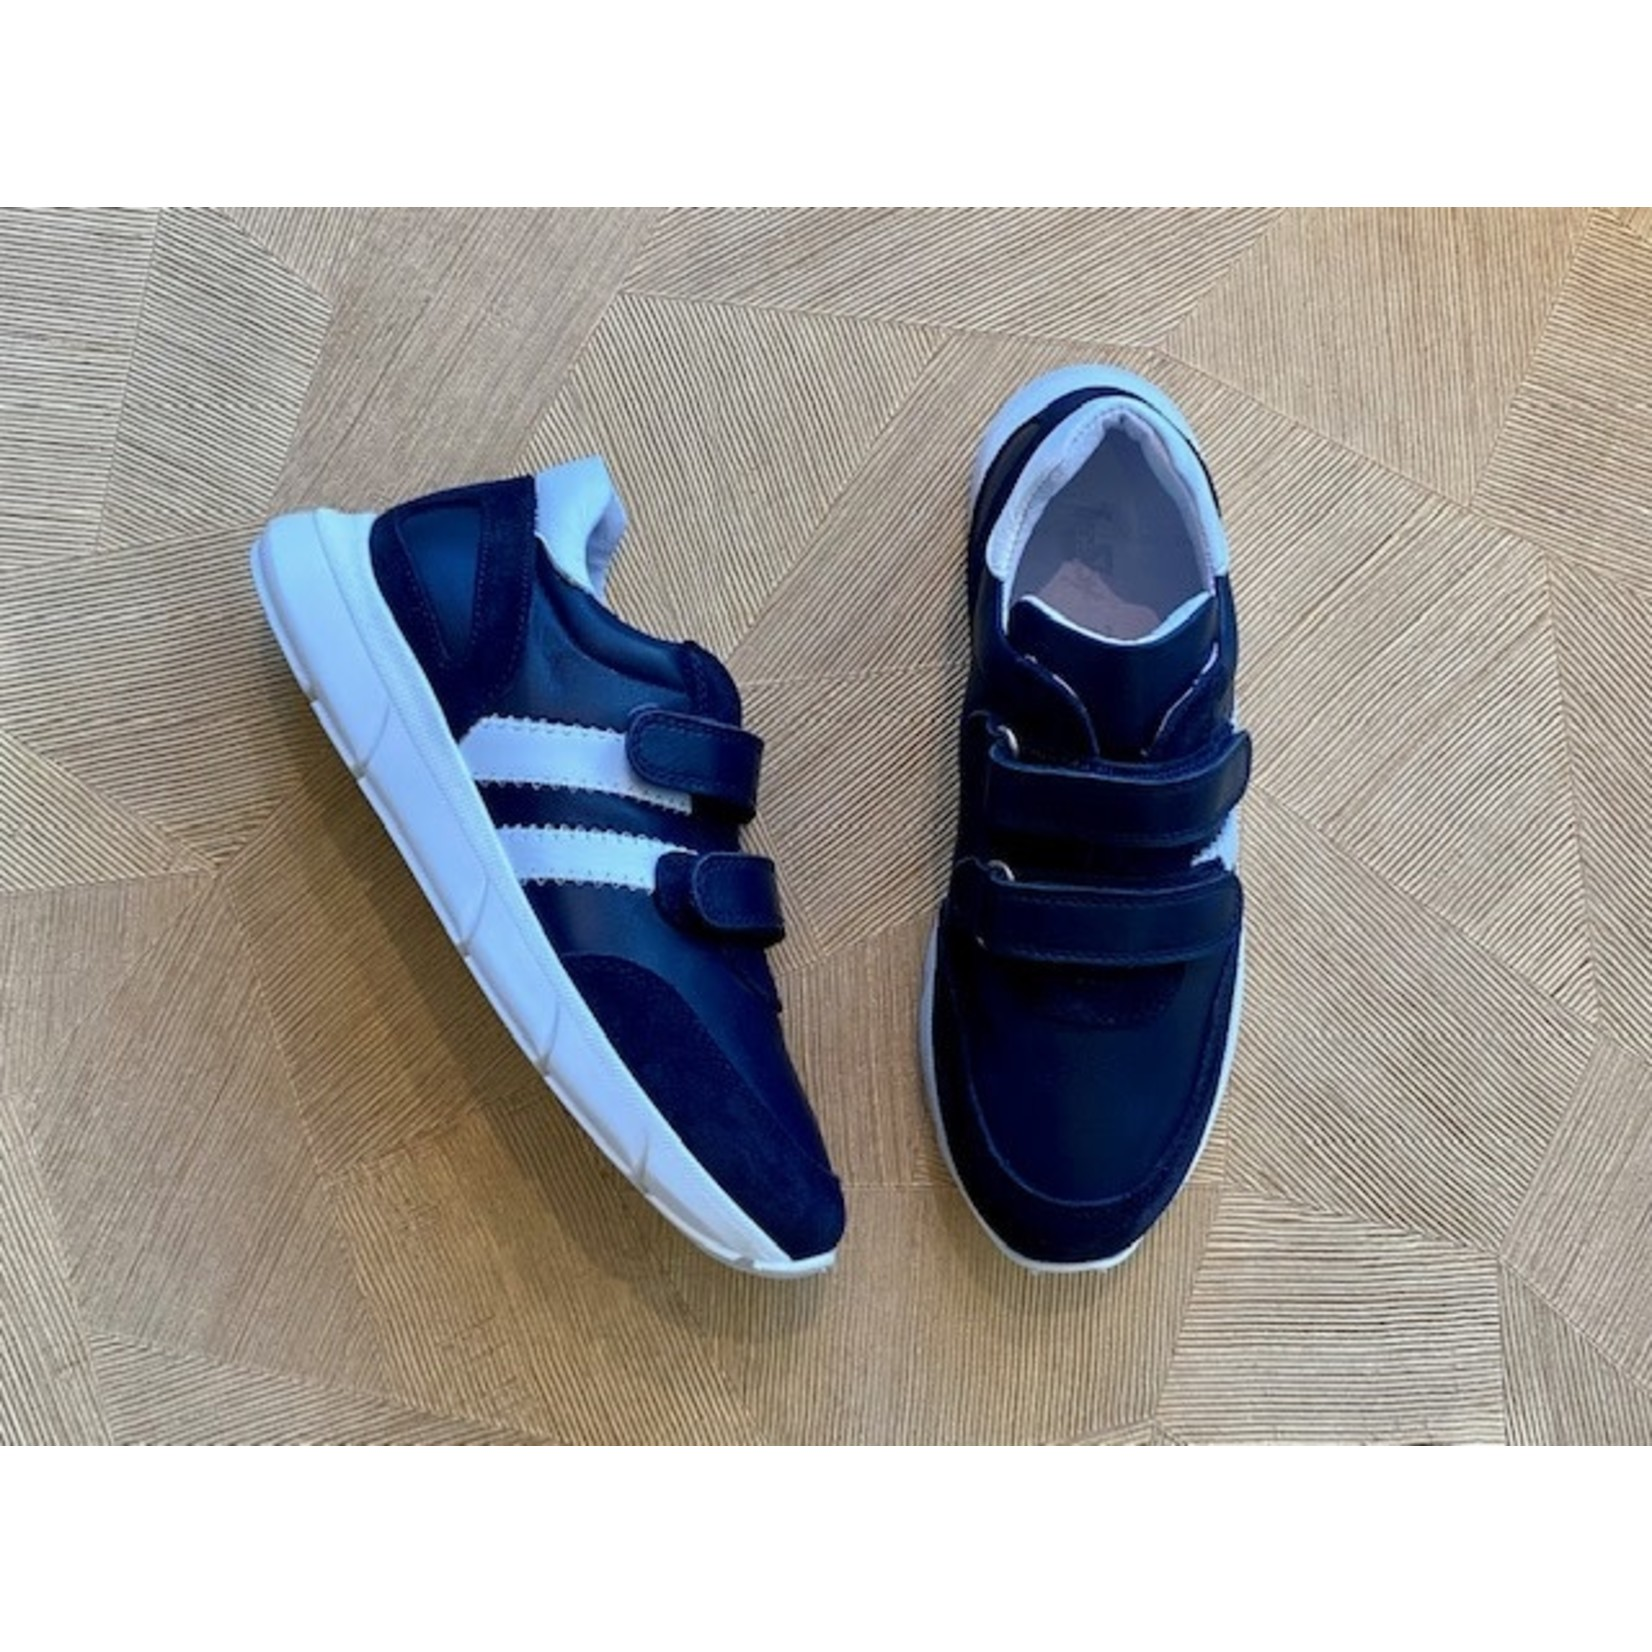 FREESBY FREESBY runner kl.band NAVY